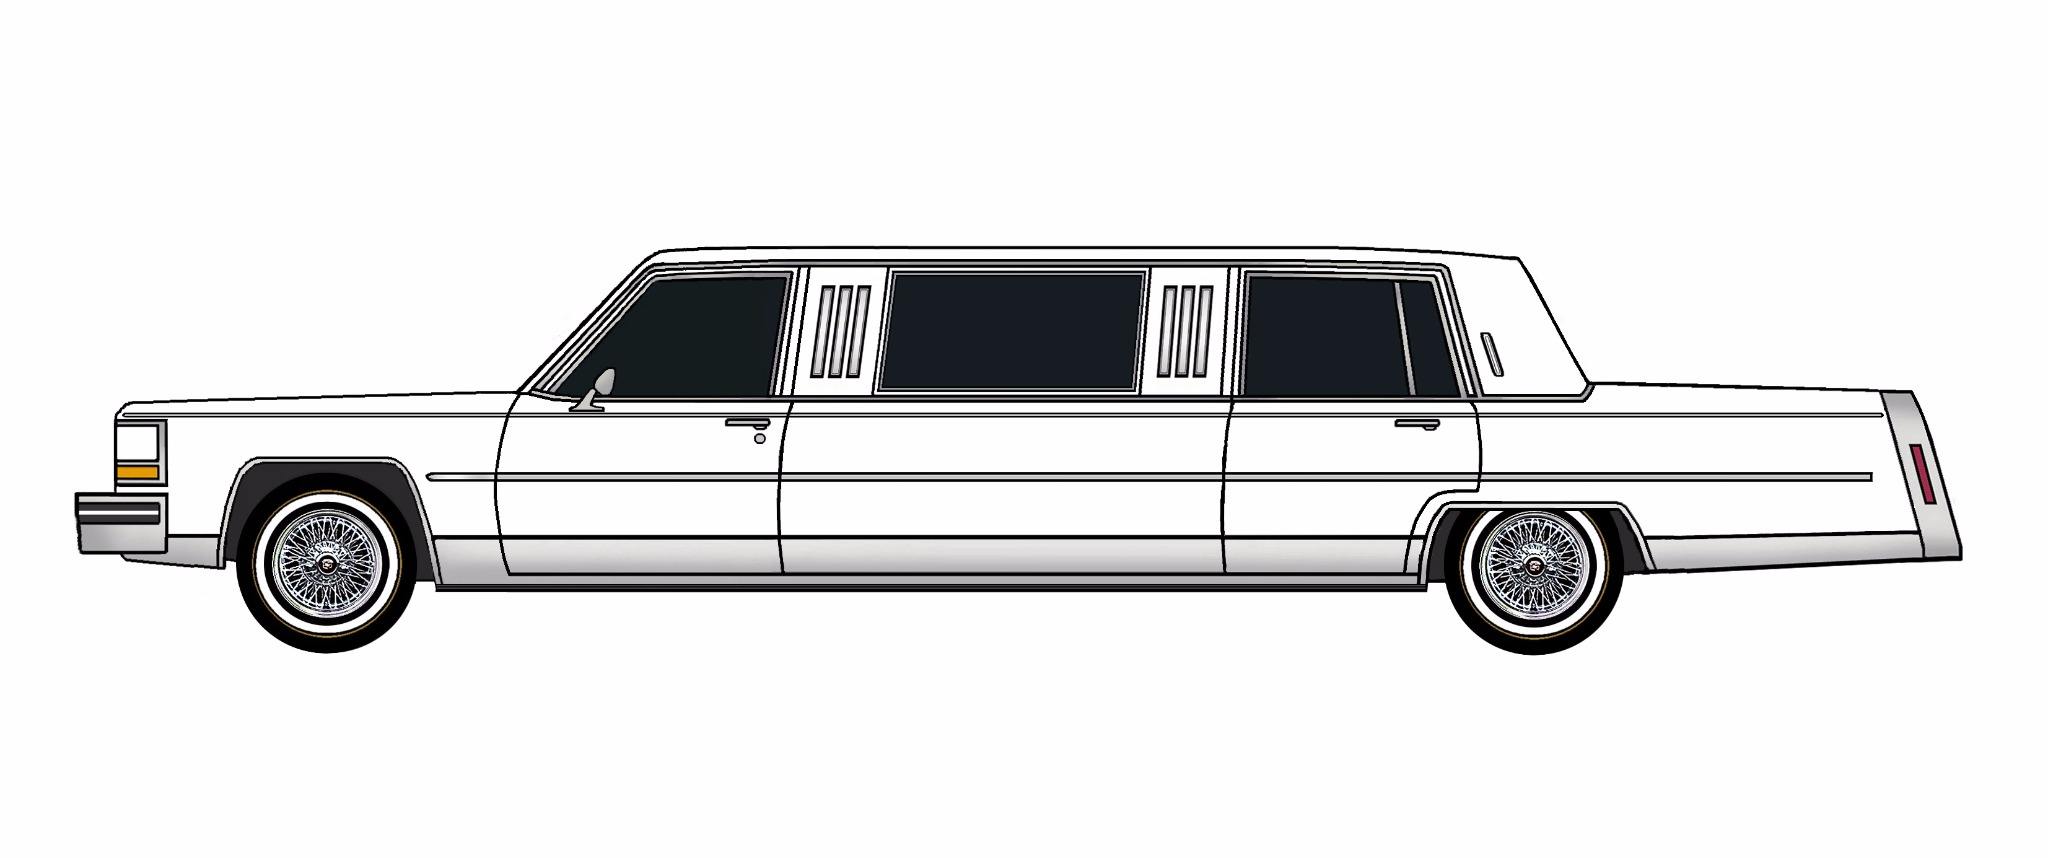 1984 Cadillac Fleetwood Brougham Limo WHITE